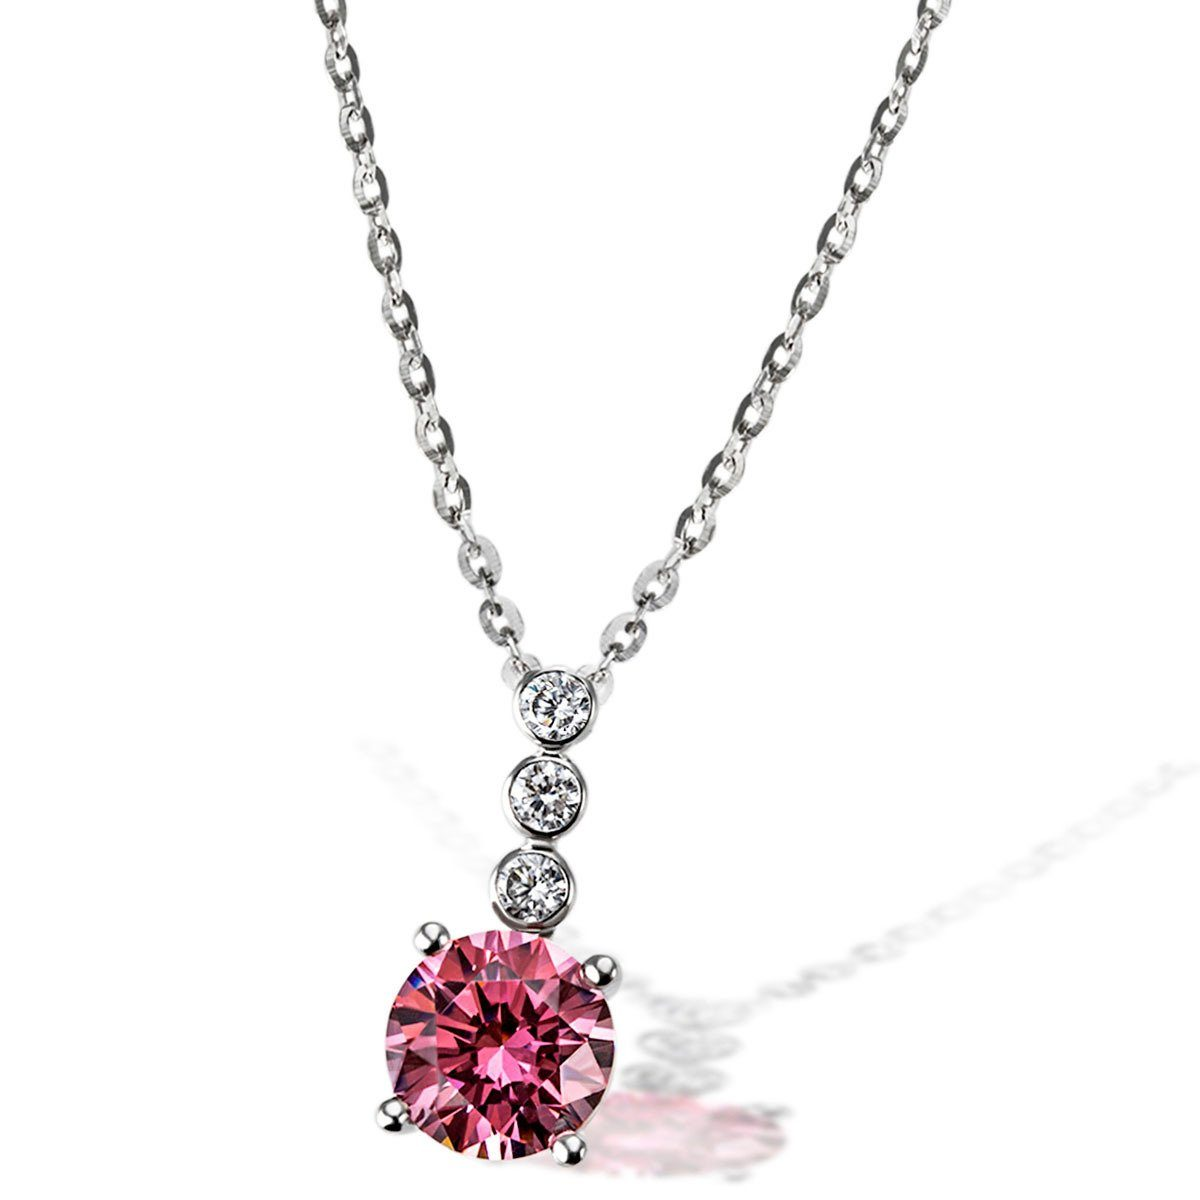 goldmaid Collier Fancy Pink 925/- Sterlingsilber 3 weiße Zirkonia 1 pinke